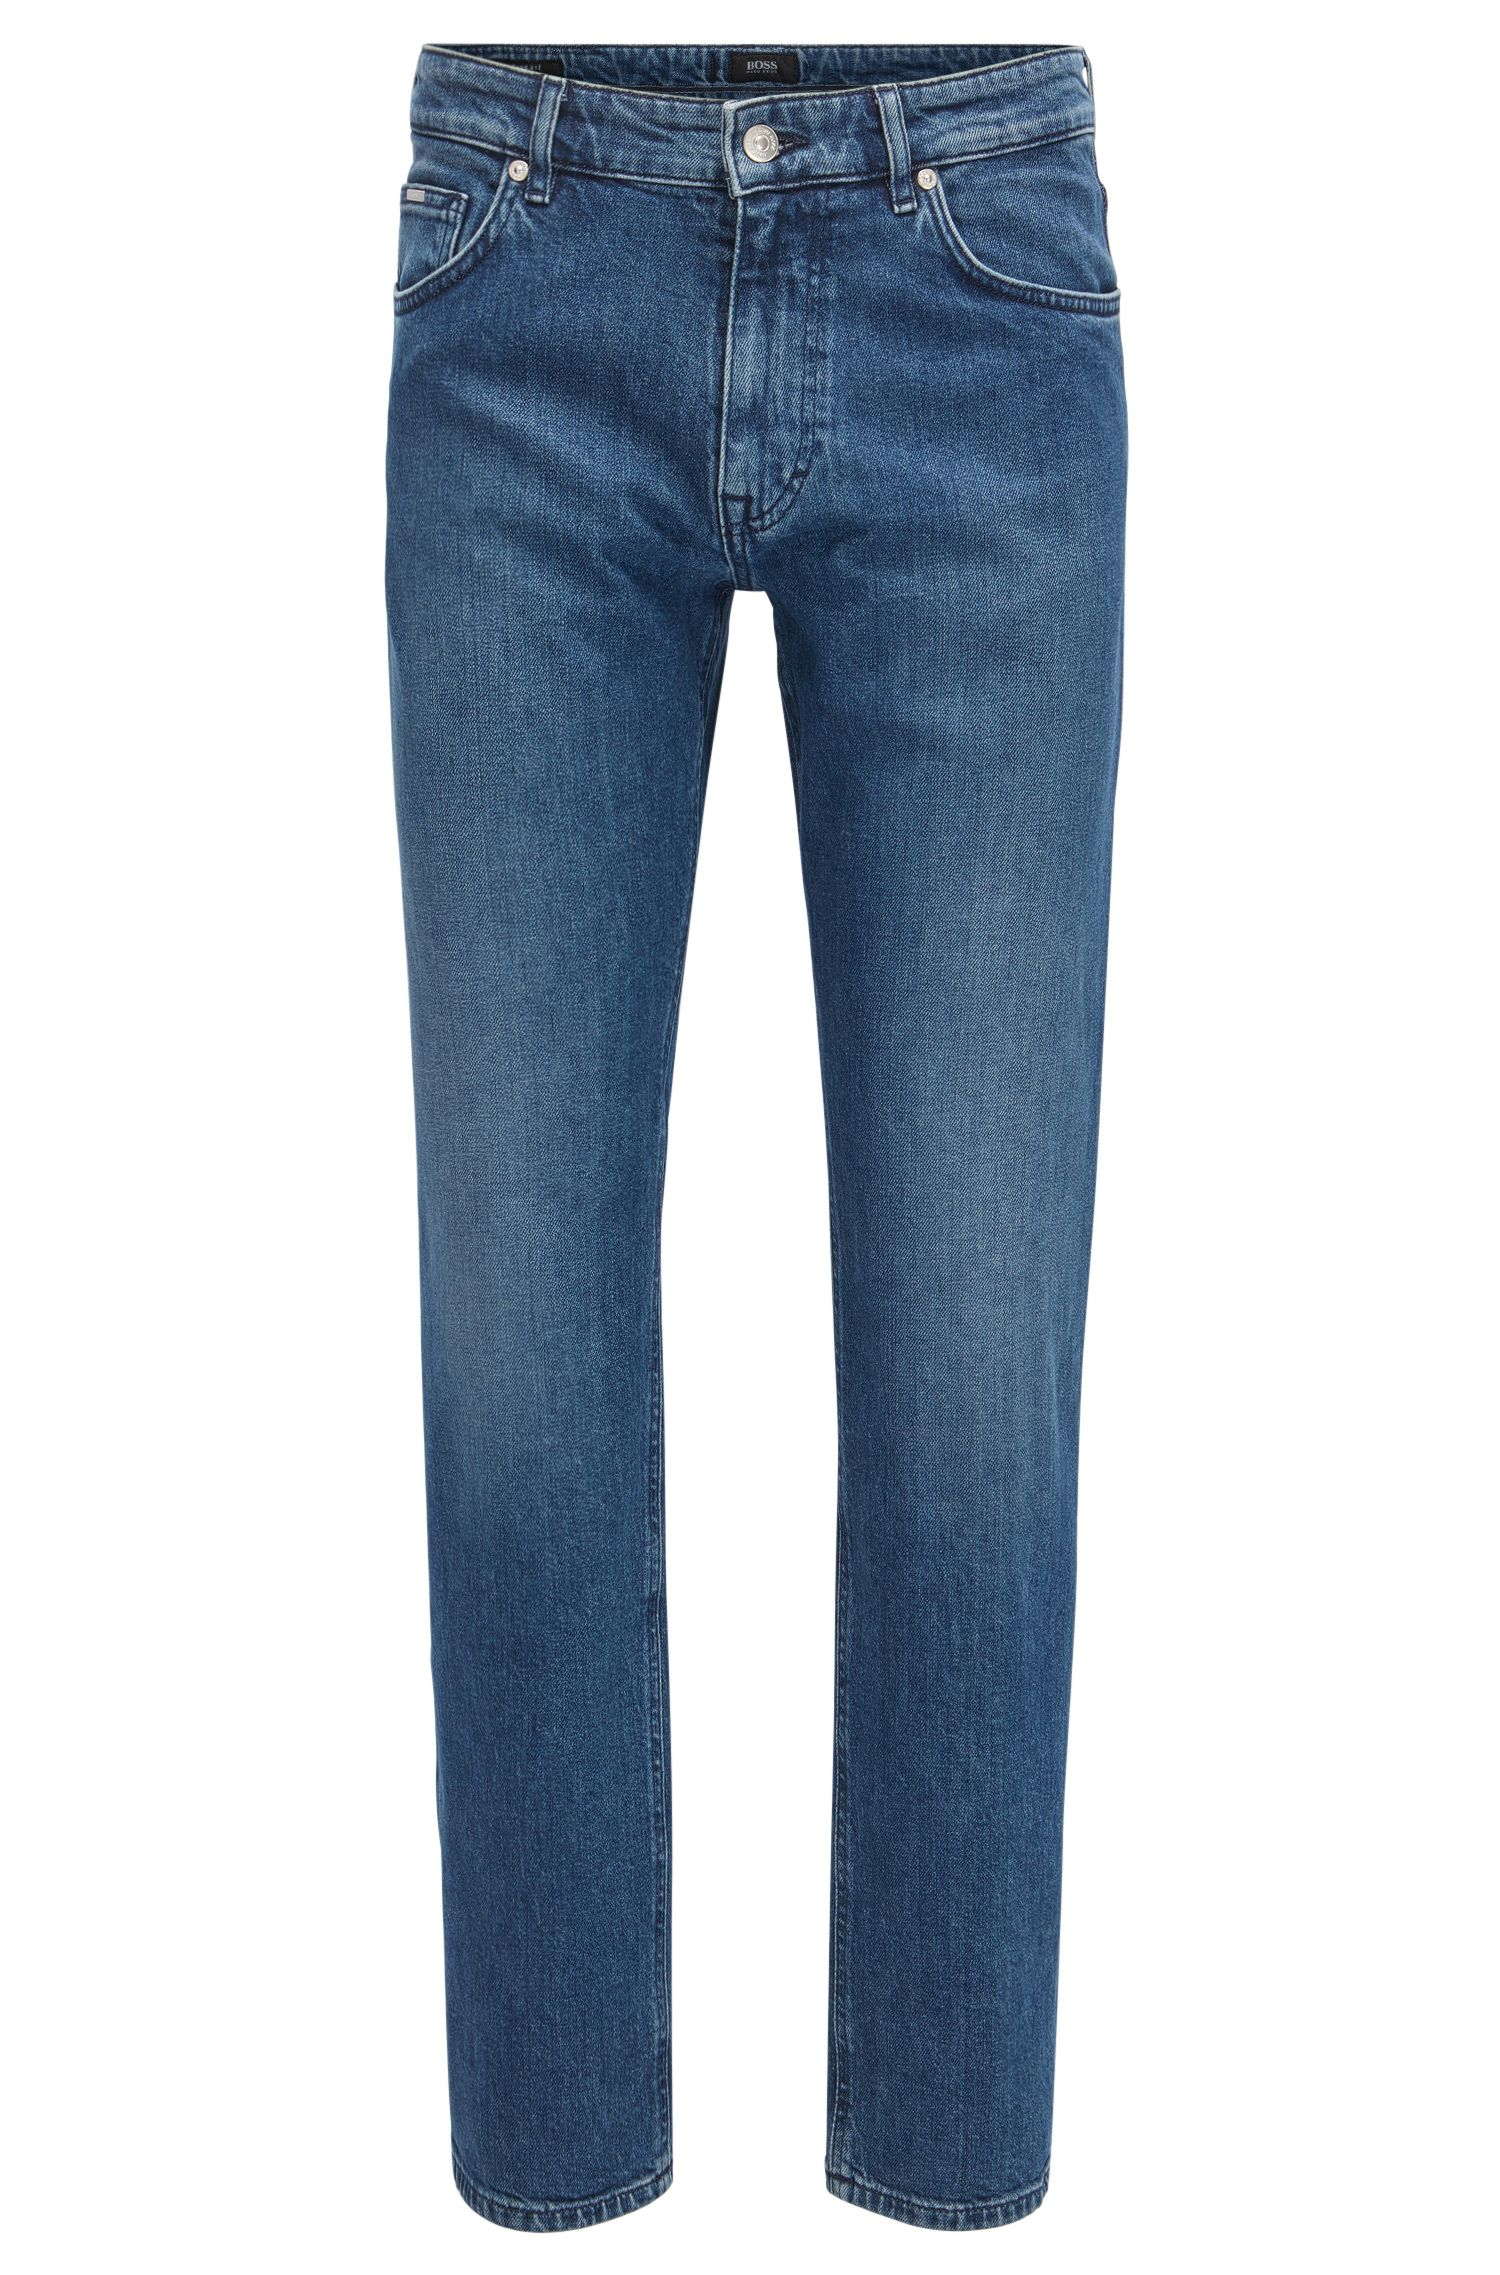 Jeans relaxed fit in denim italiano blu scuro